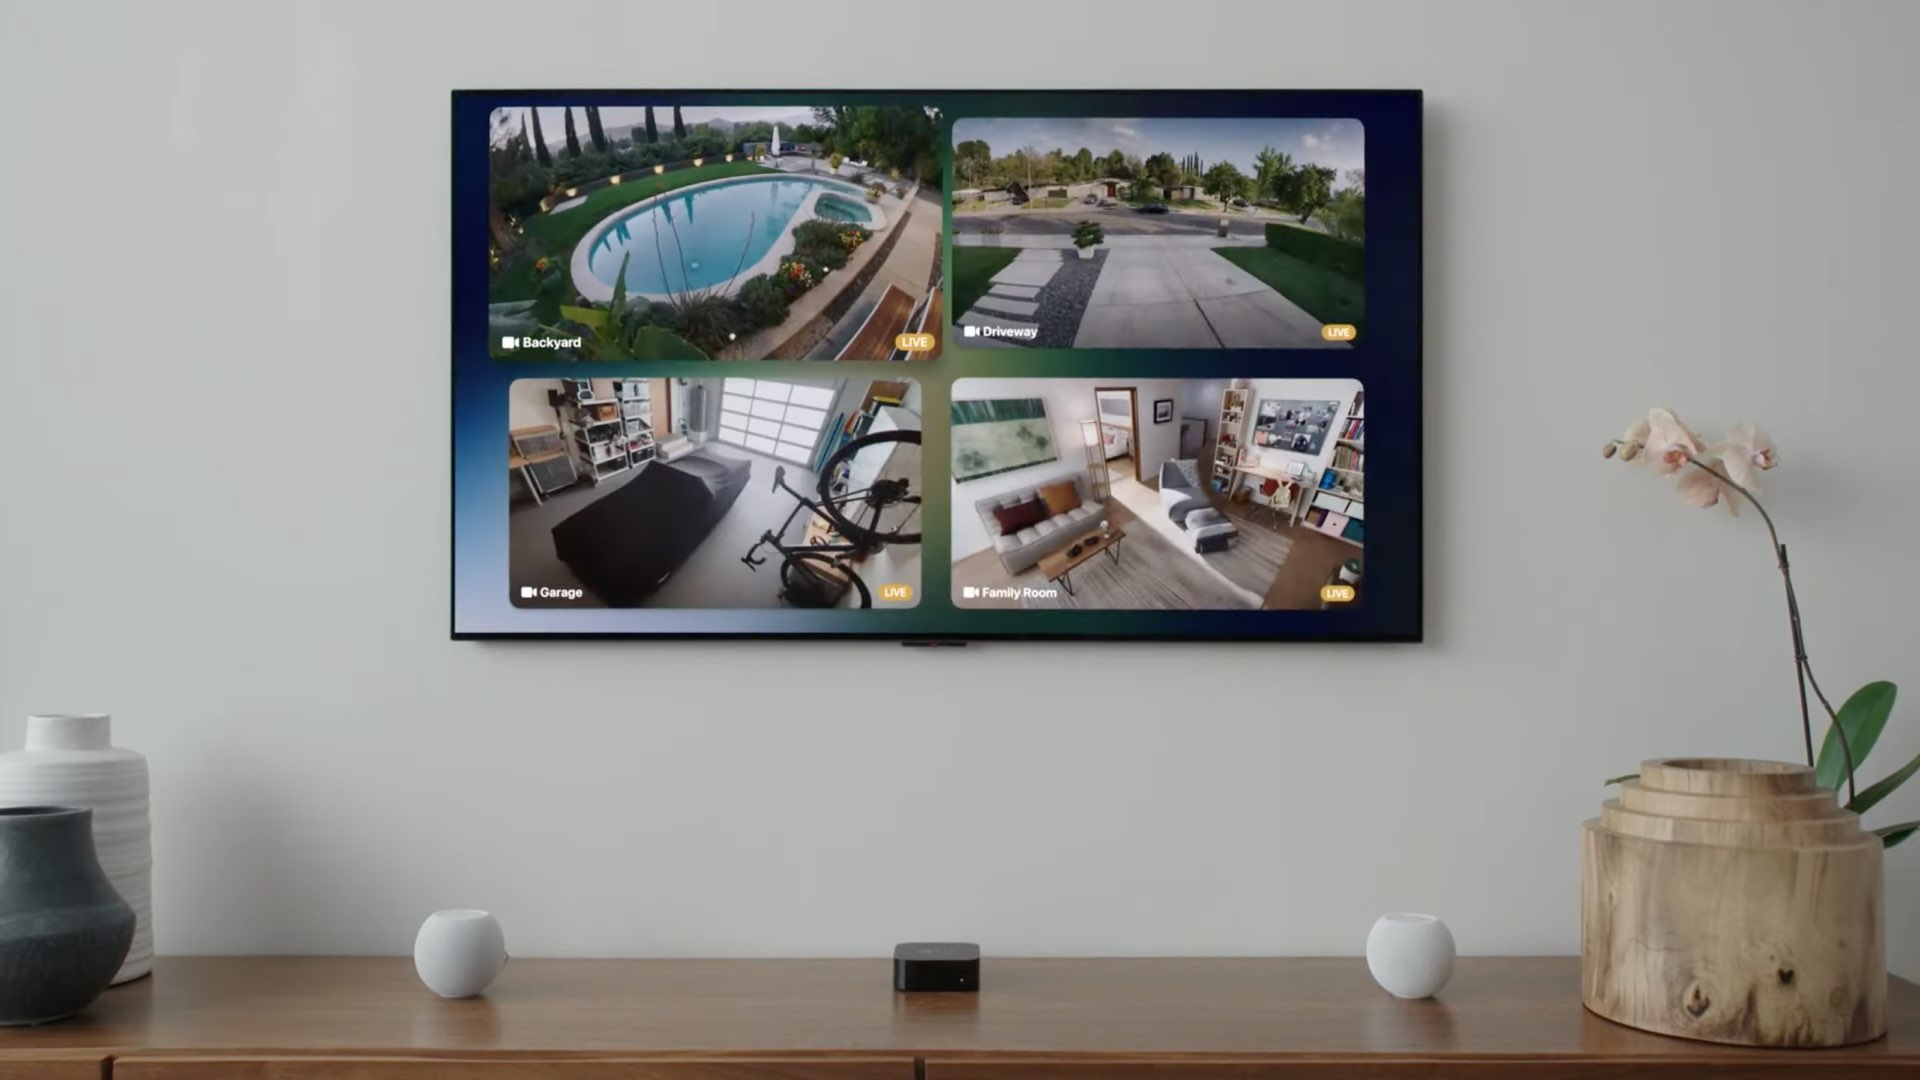 An image showing four simultaneous video feeds from HomeKit security cameras displayed in a 2x2 grid on Apple TV with tvOS 15